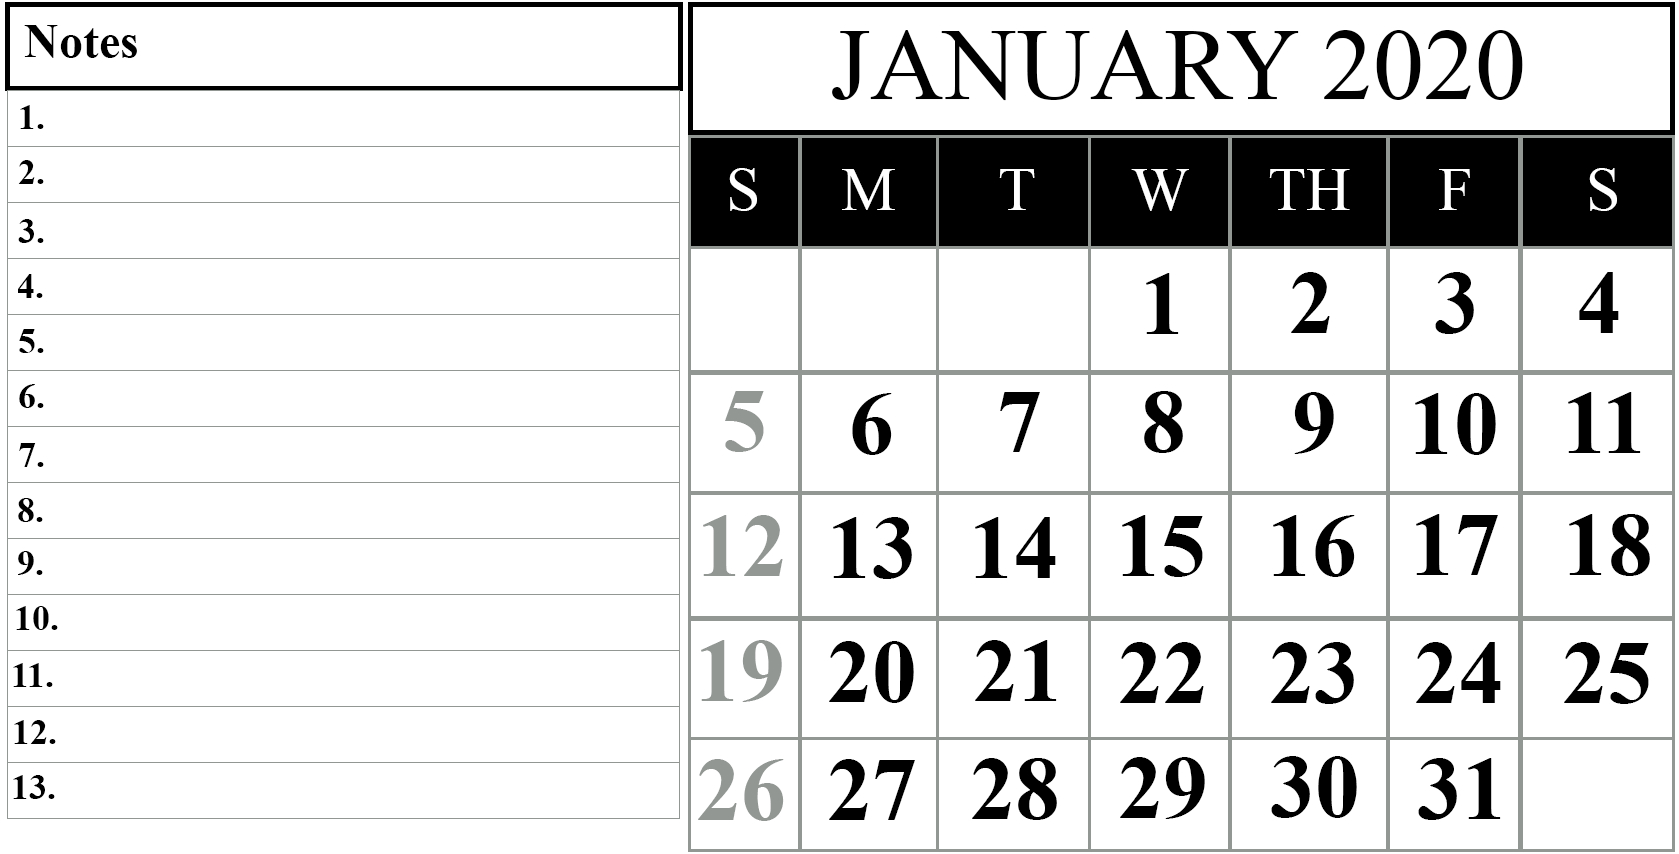 January 2020 Printable Calendar Template #2020Calendars